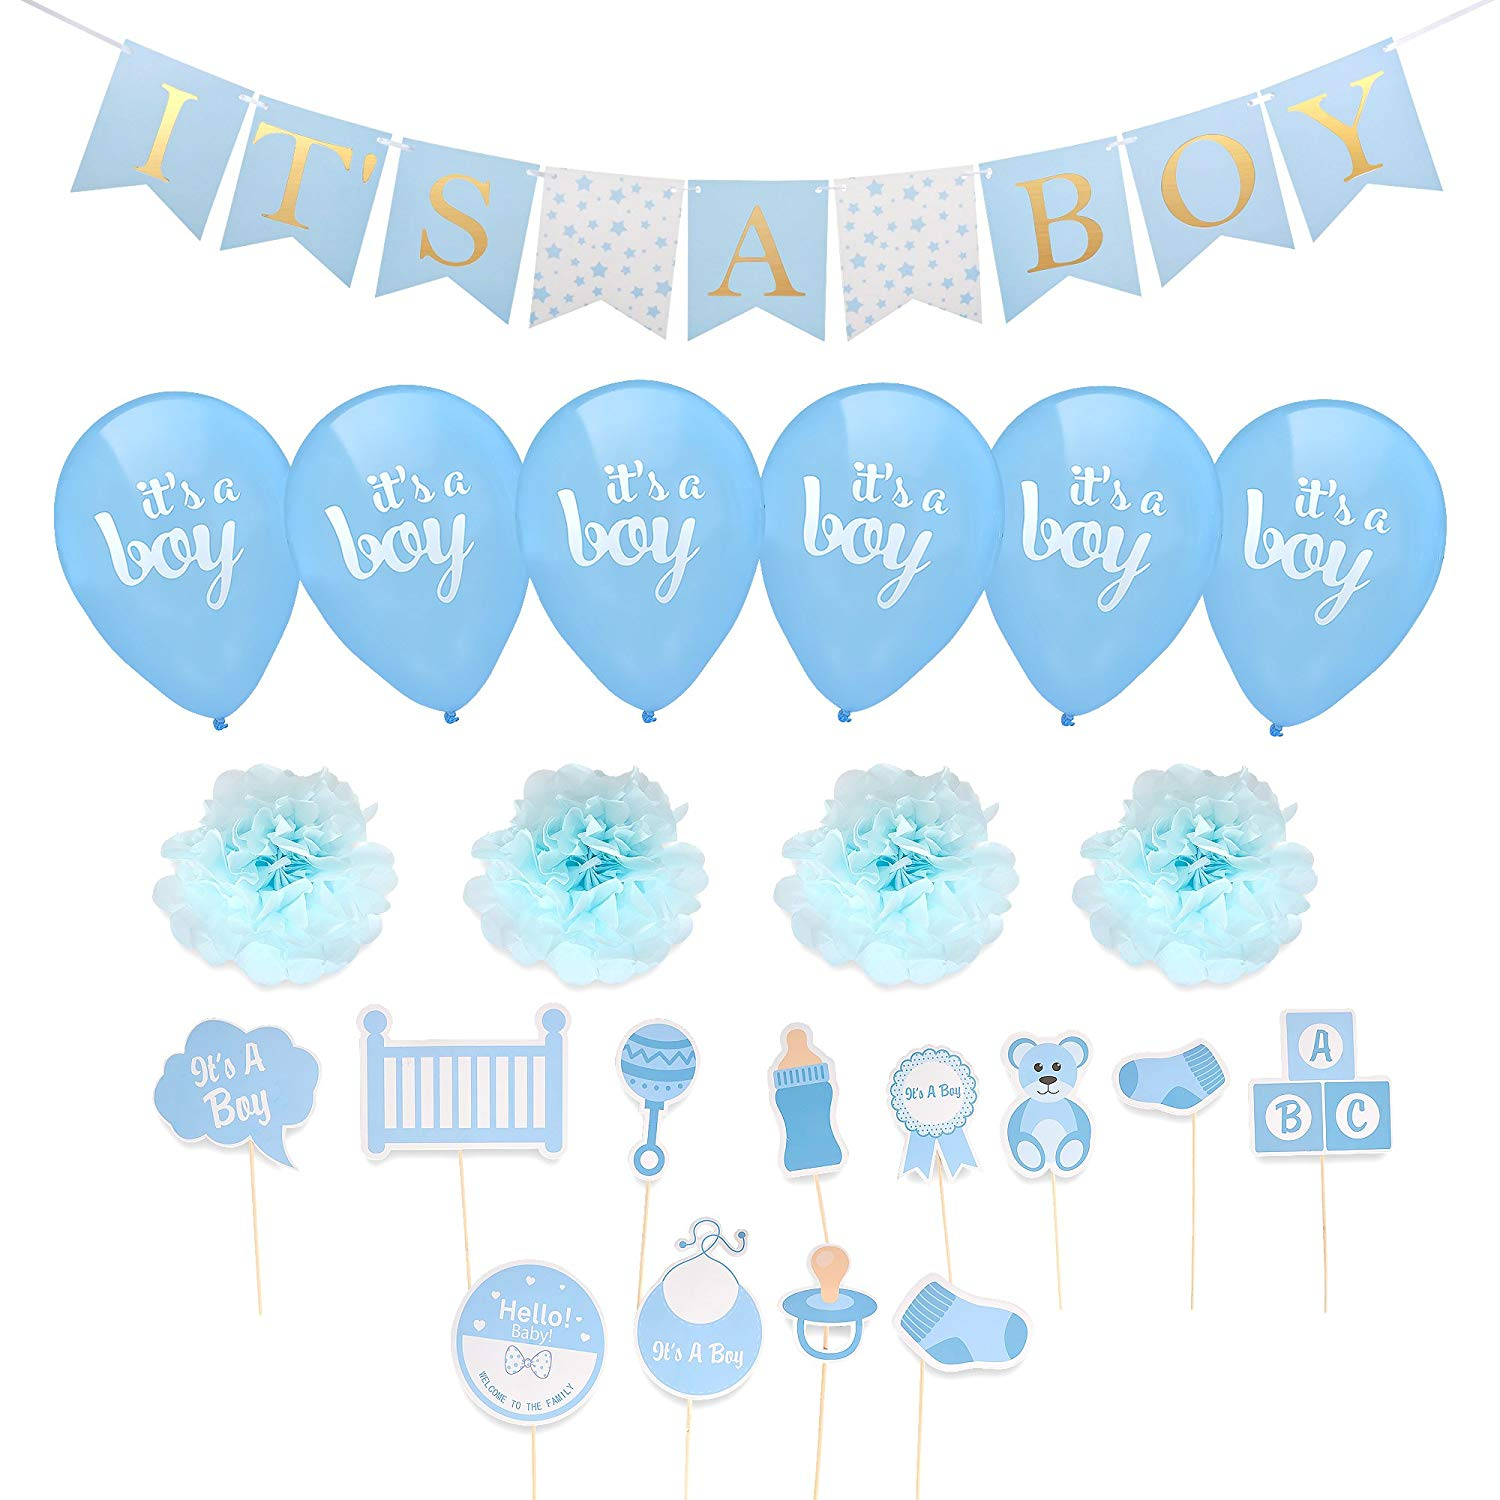 Boy Baby Shower Decorations - Baby Shower Party Decorations, Baby Shower Decorations Set, Blue, Gold Baby Shower Decorations, Boy Baby Shower Decor - by Honest Baby